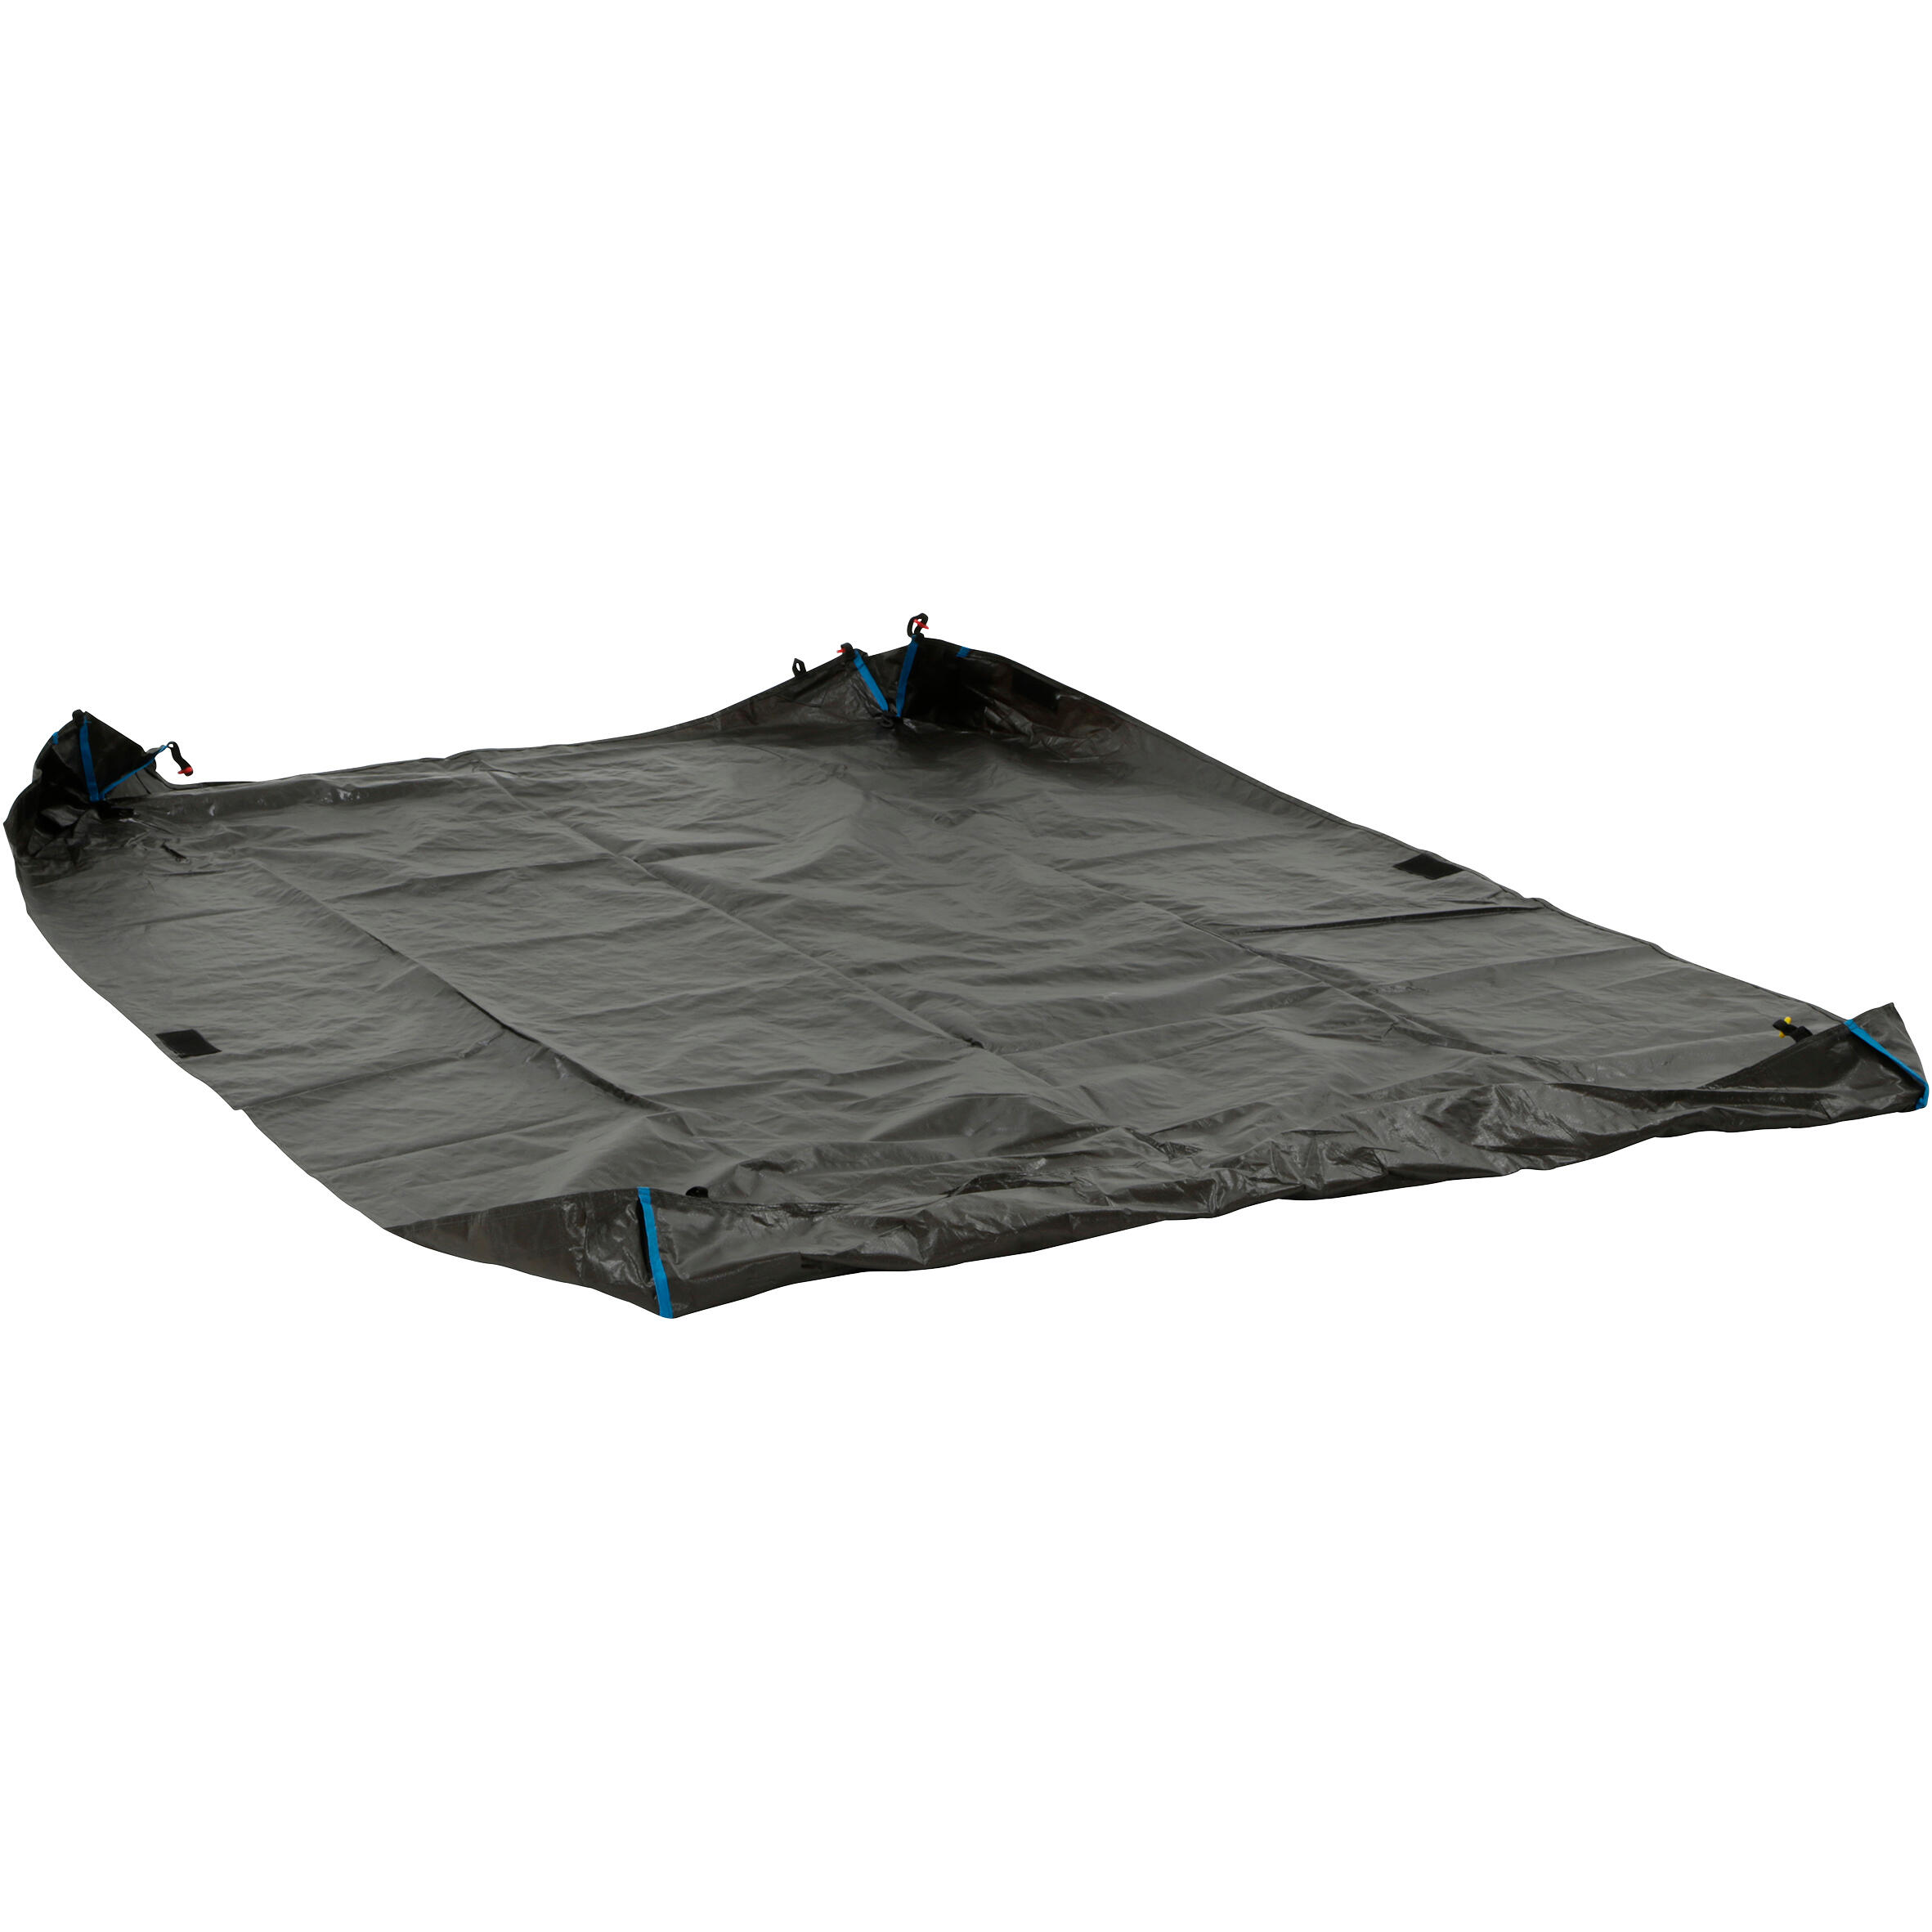 www.decathlon.es